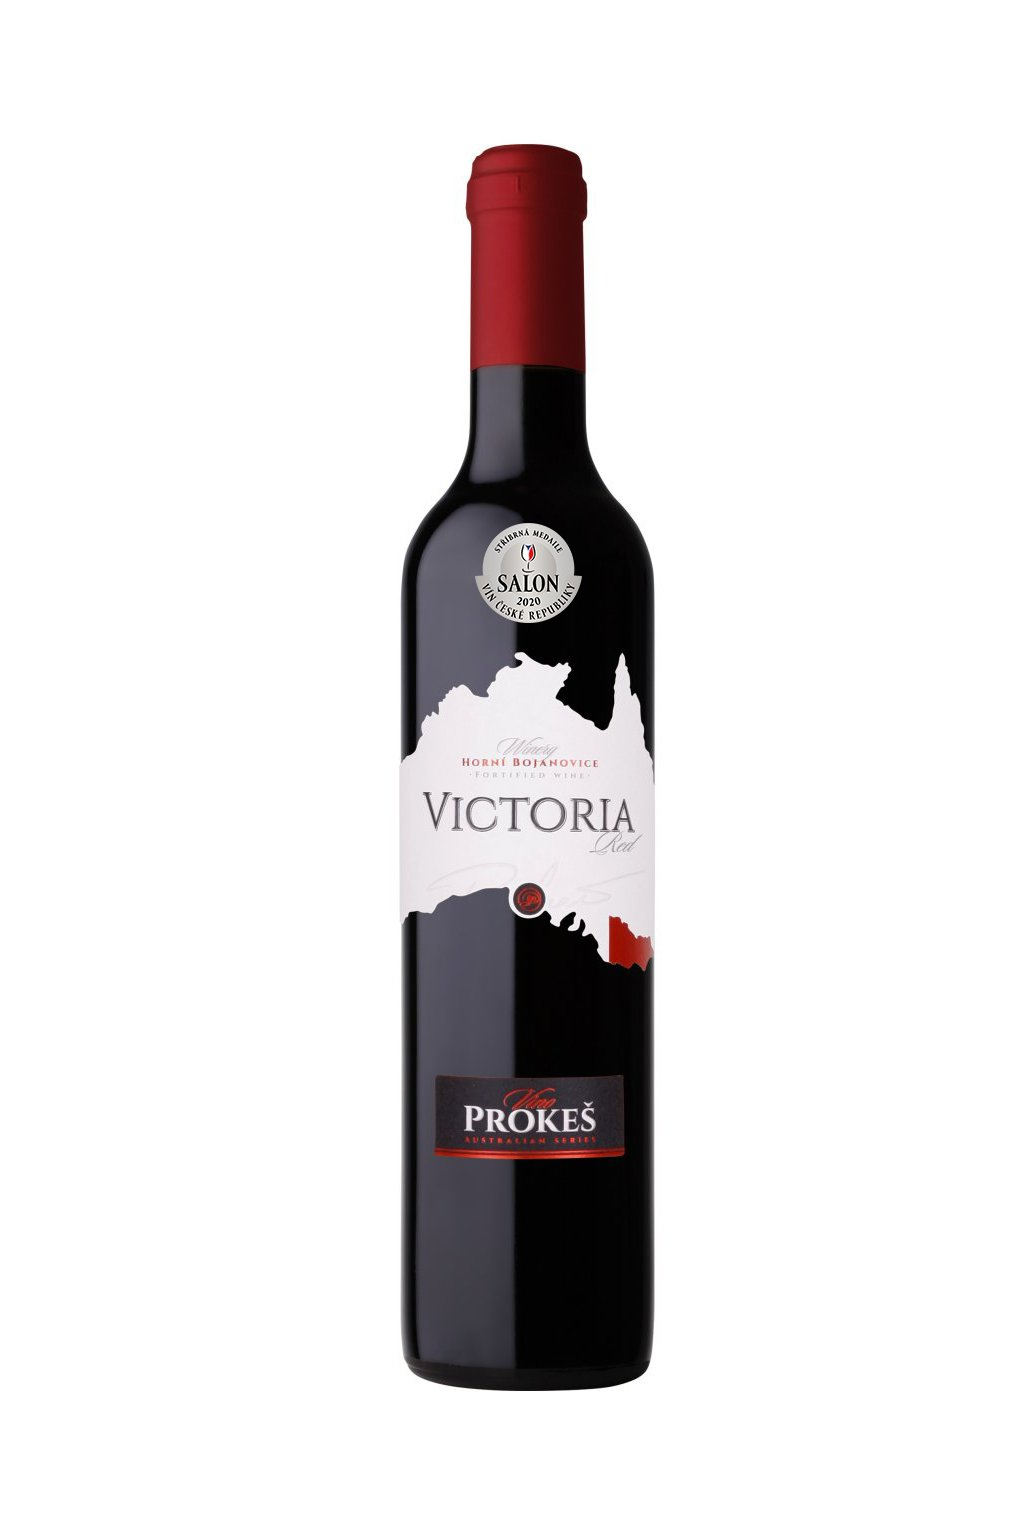 victoria red 2015 stribrna medaile salon vin 2020